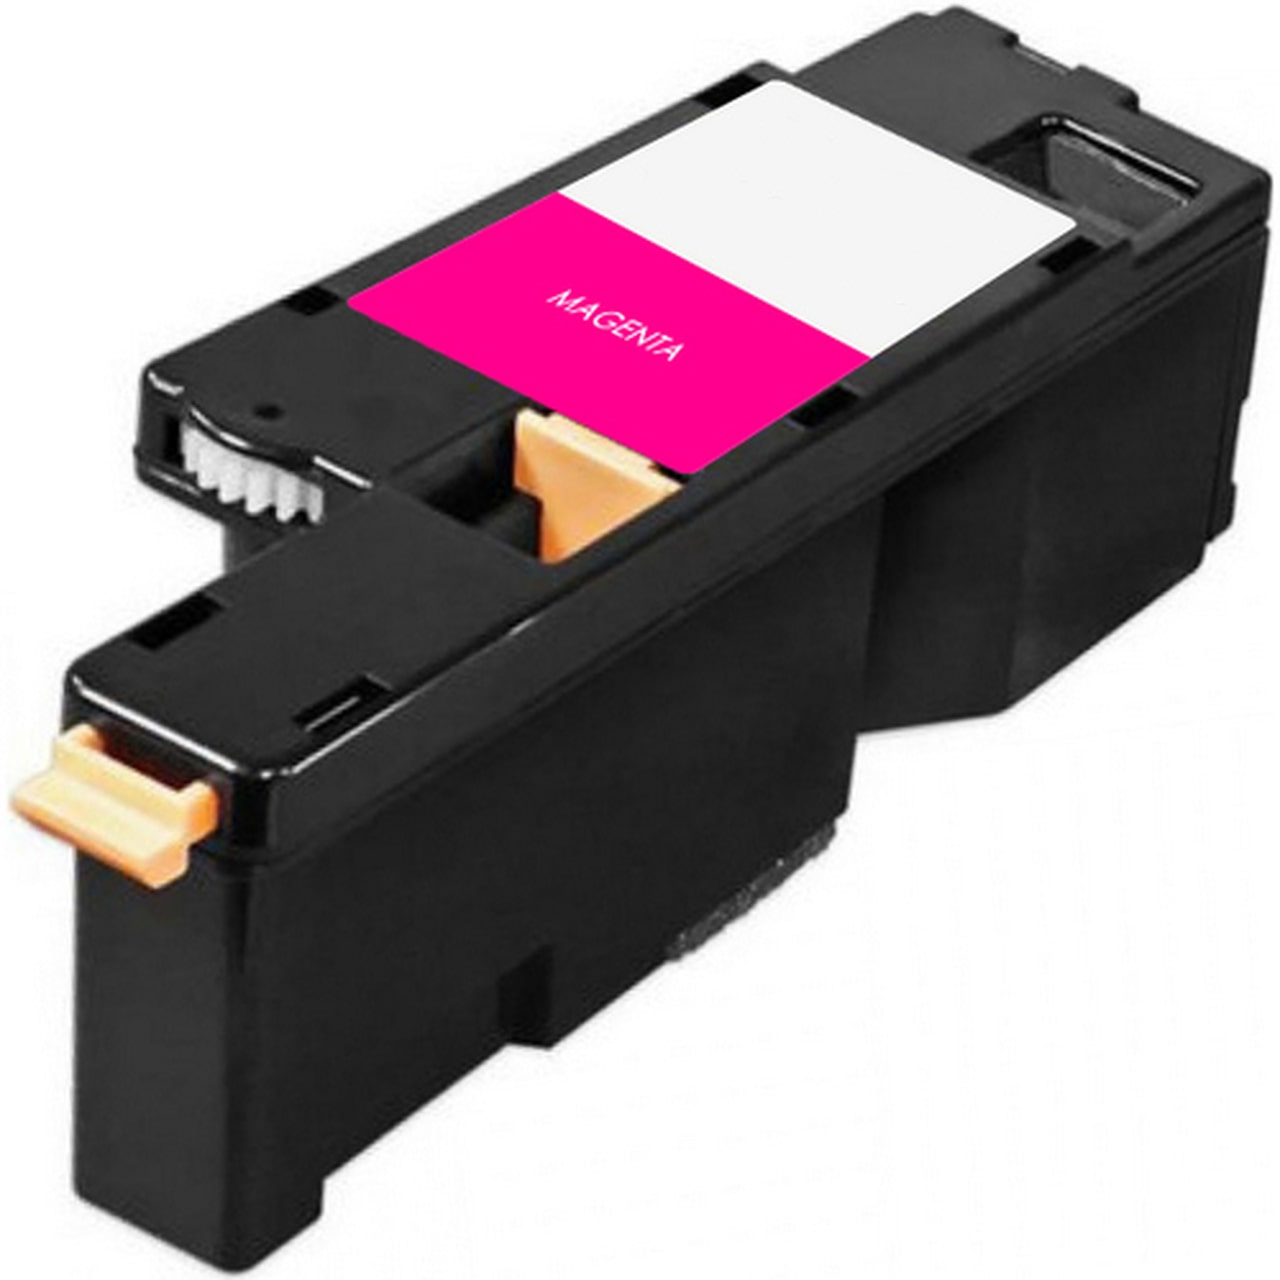 593-BBJV Toner Cartridge - Dell Compatible (Magenta)